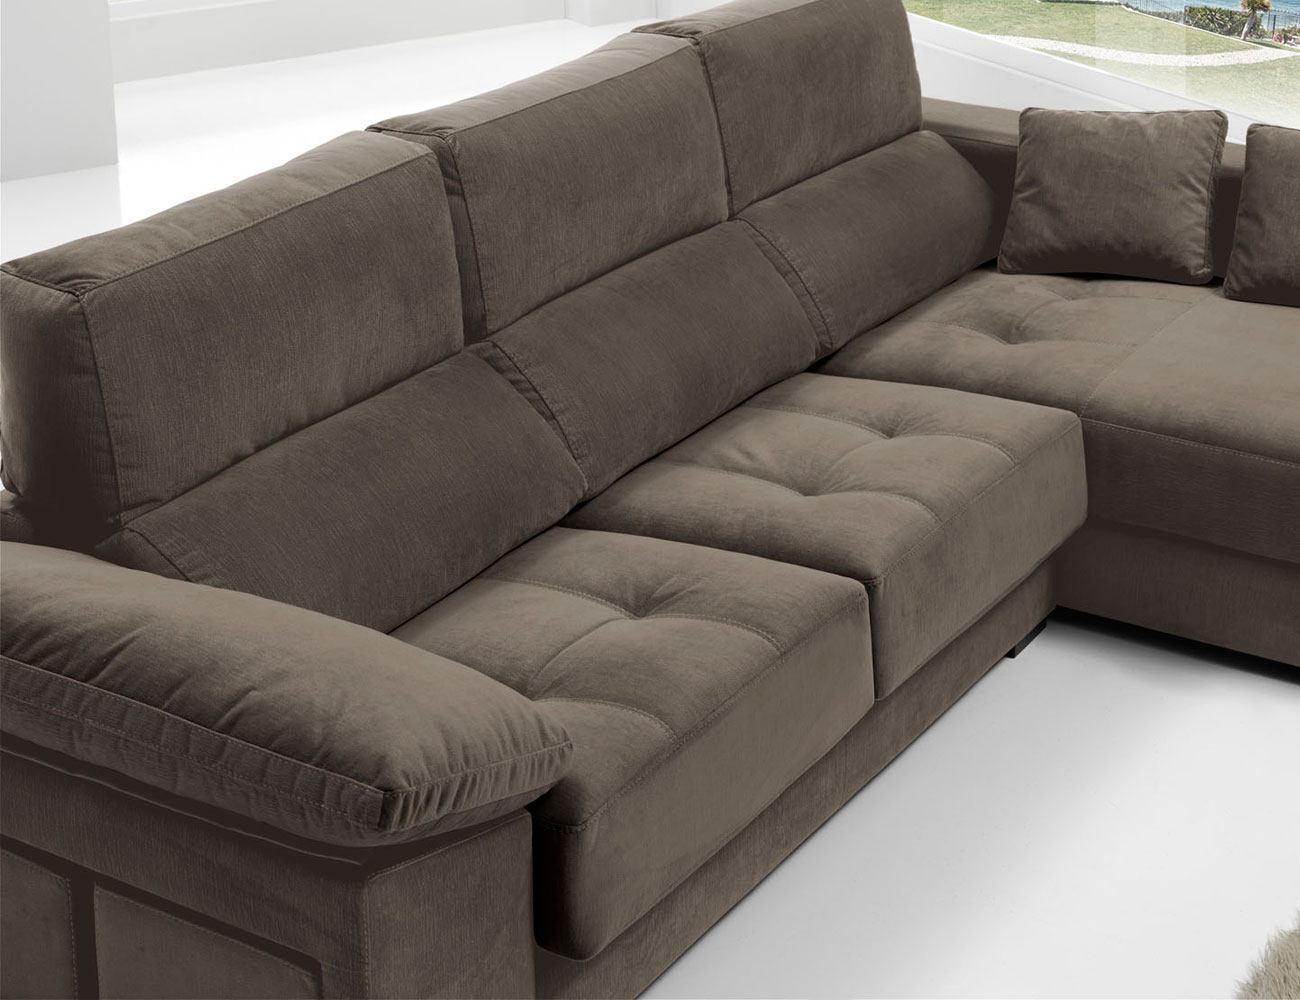 Sofa chaiselongue anti manchas bering pouf 215